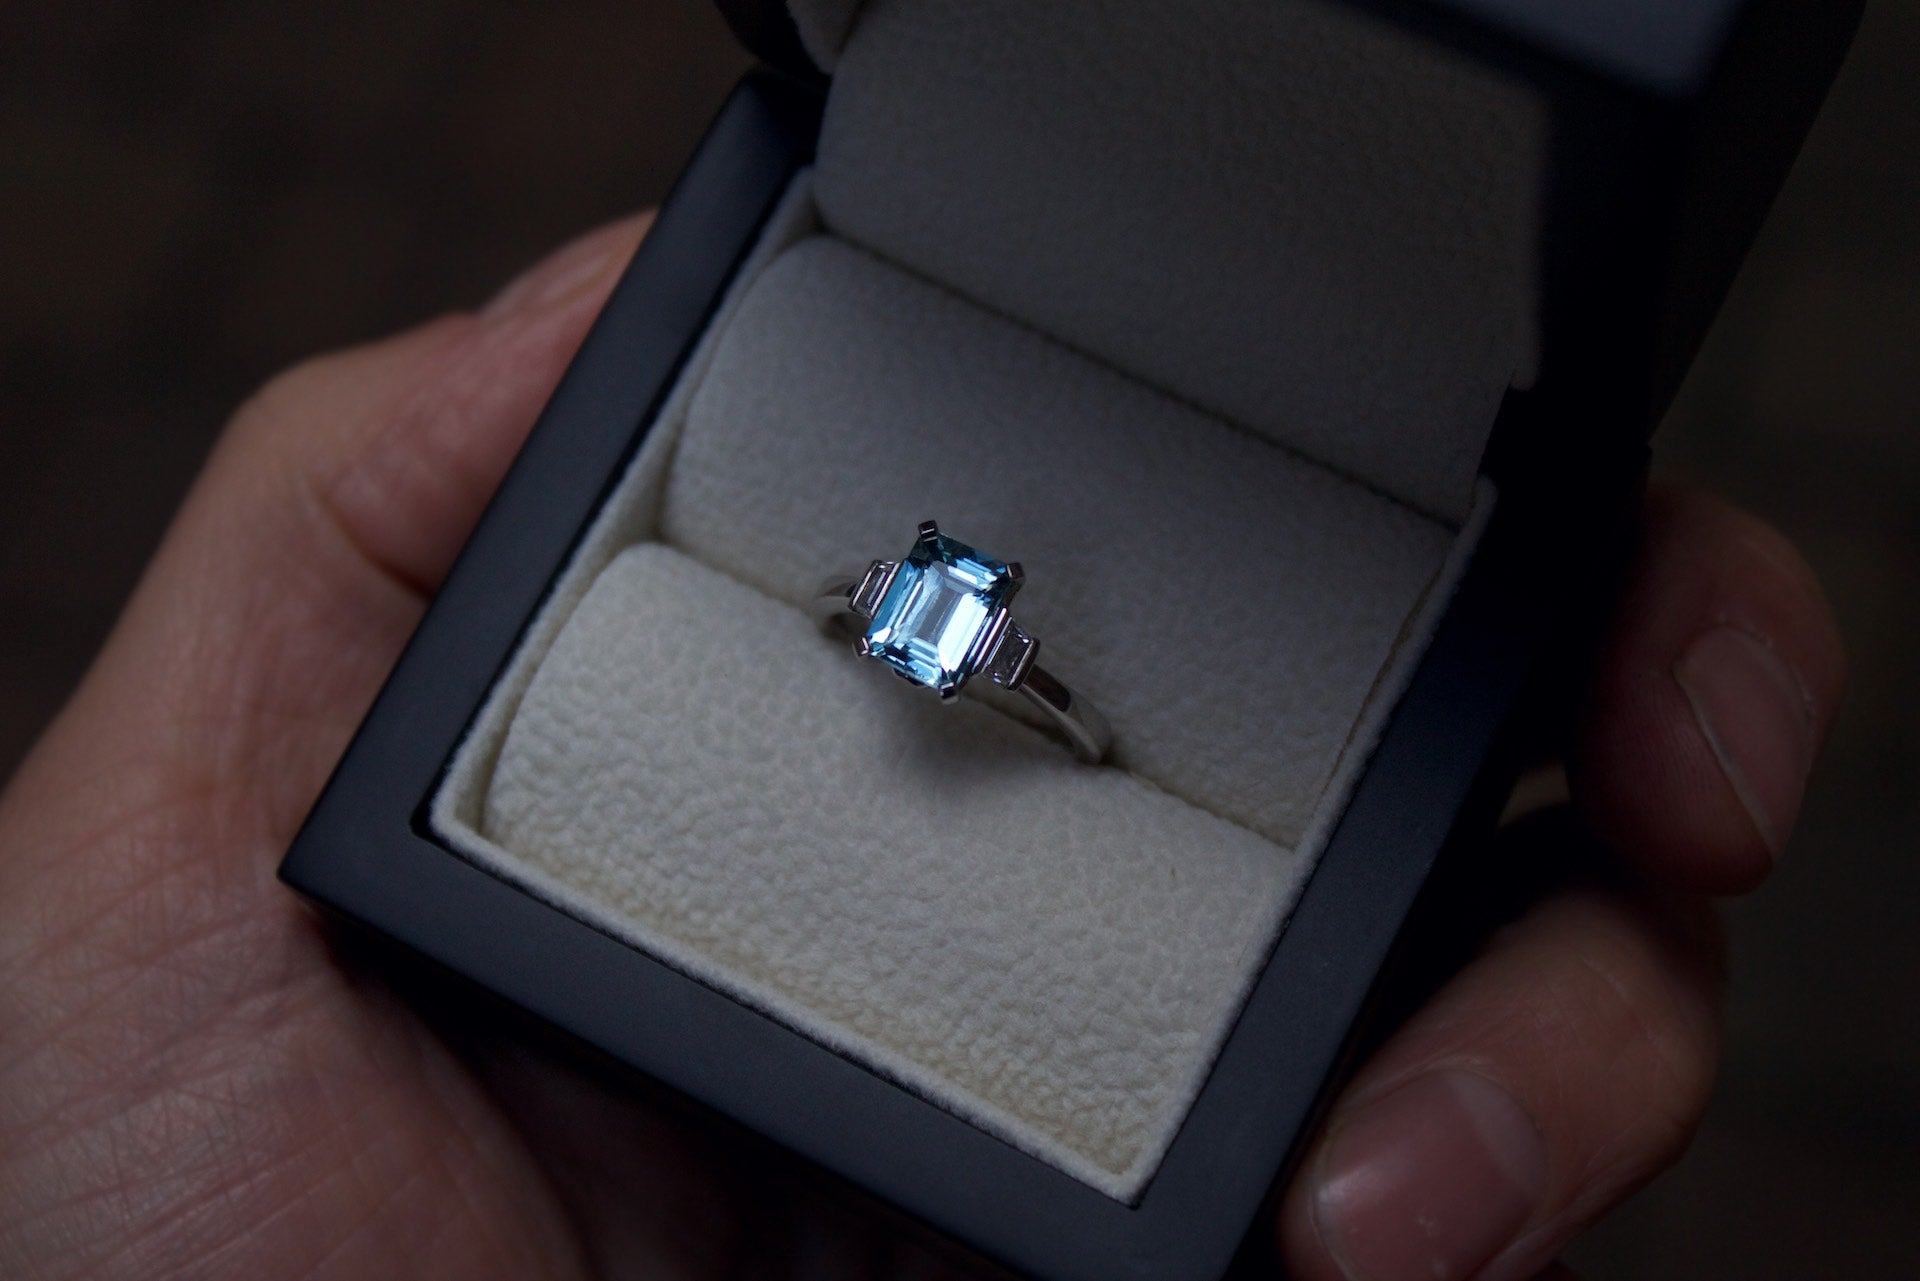 Moira Patience Fine Jewellery Bespoke Commission Handmade Aquamarine and Diamond Engagement Ring in Edinburgh Scotland